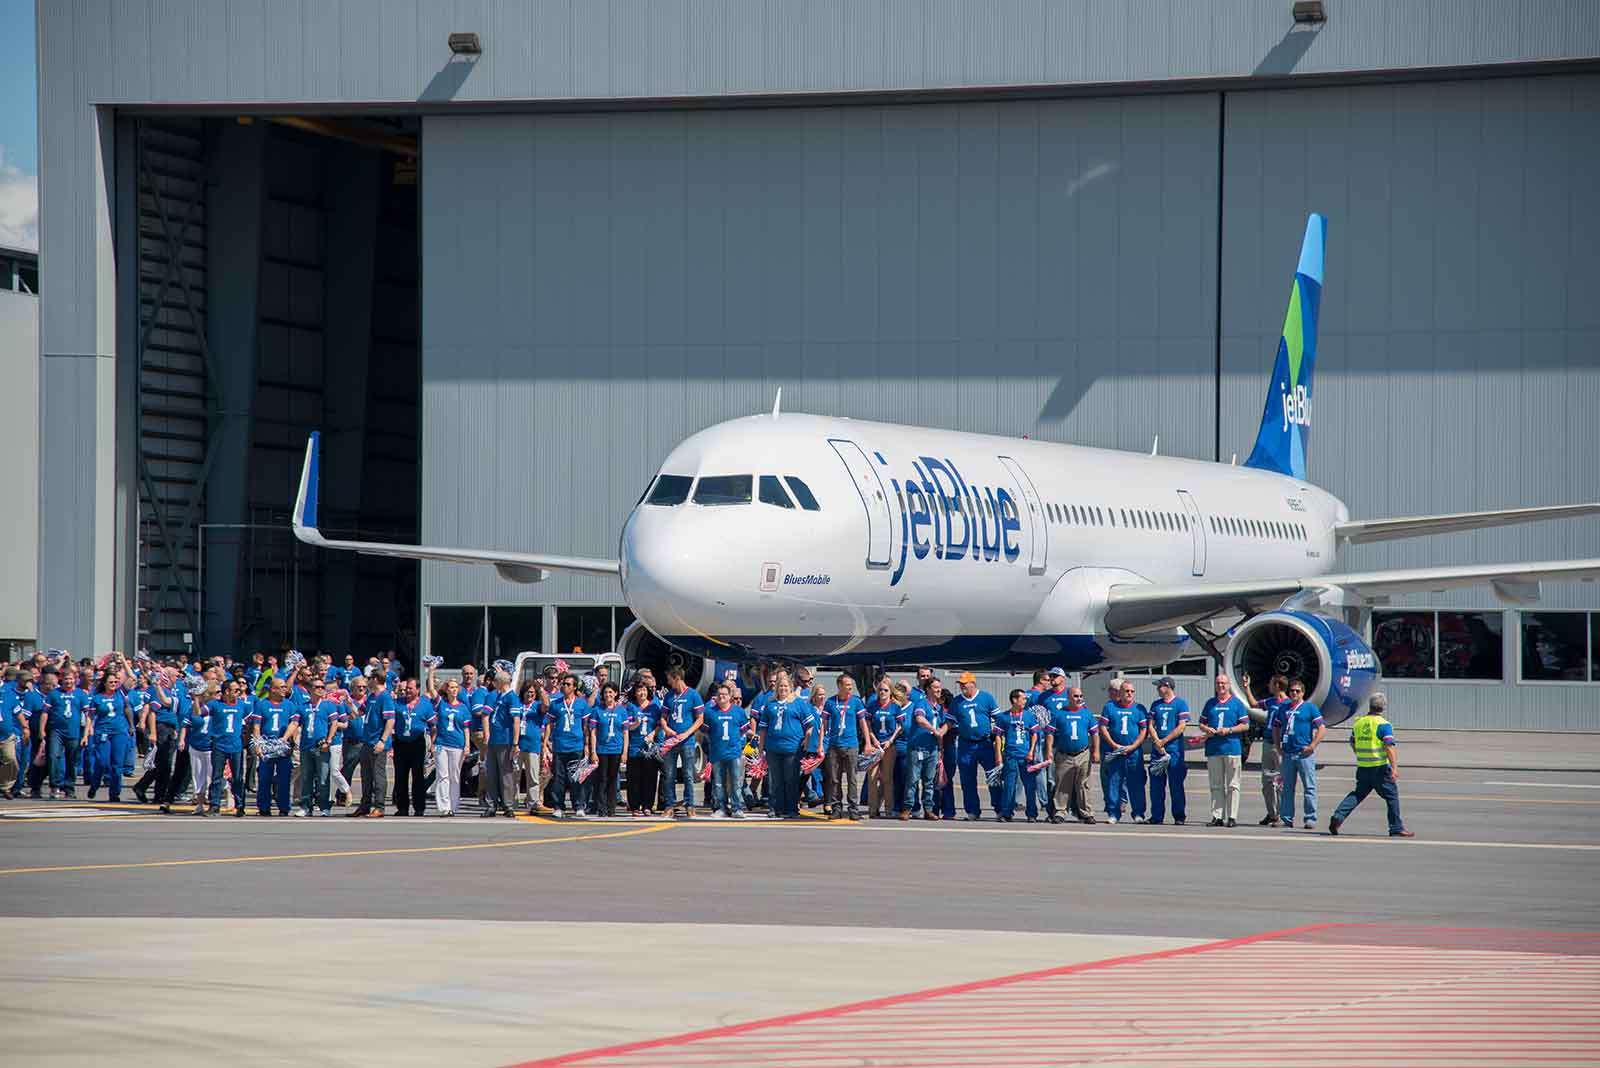 The JetBlue USA Airbus delivery